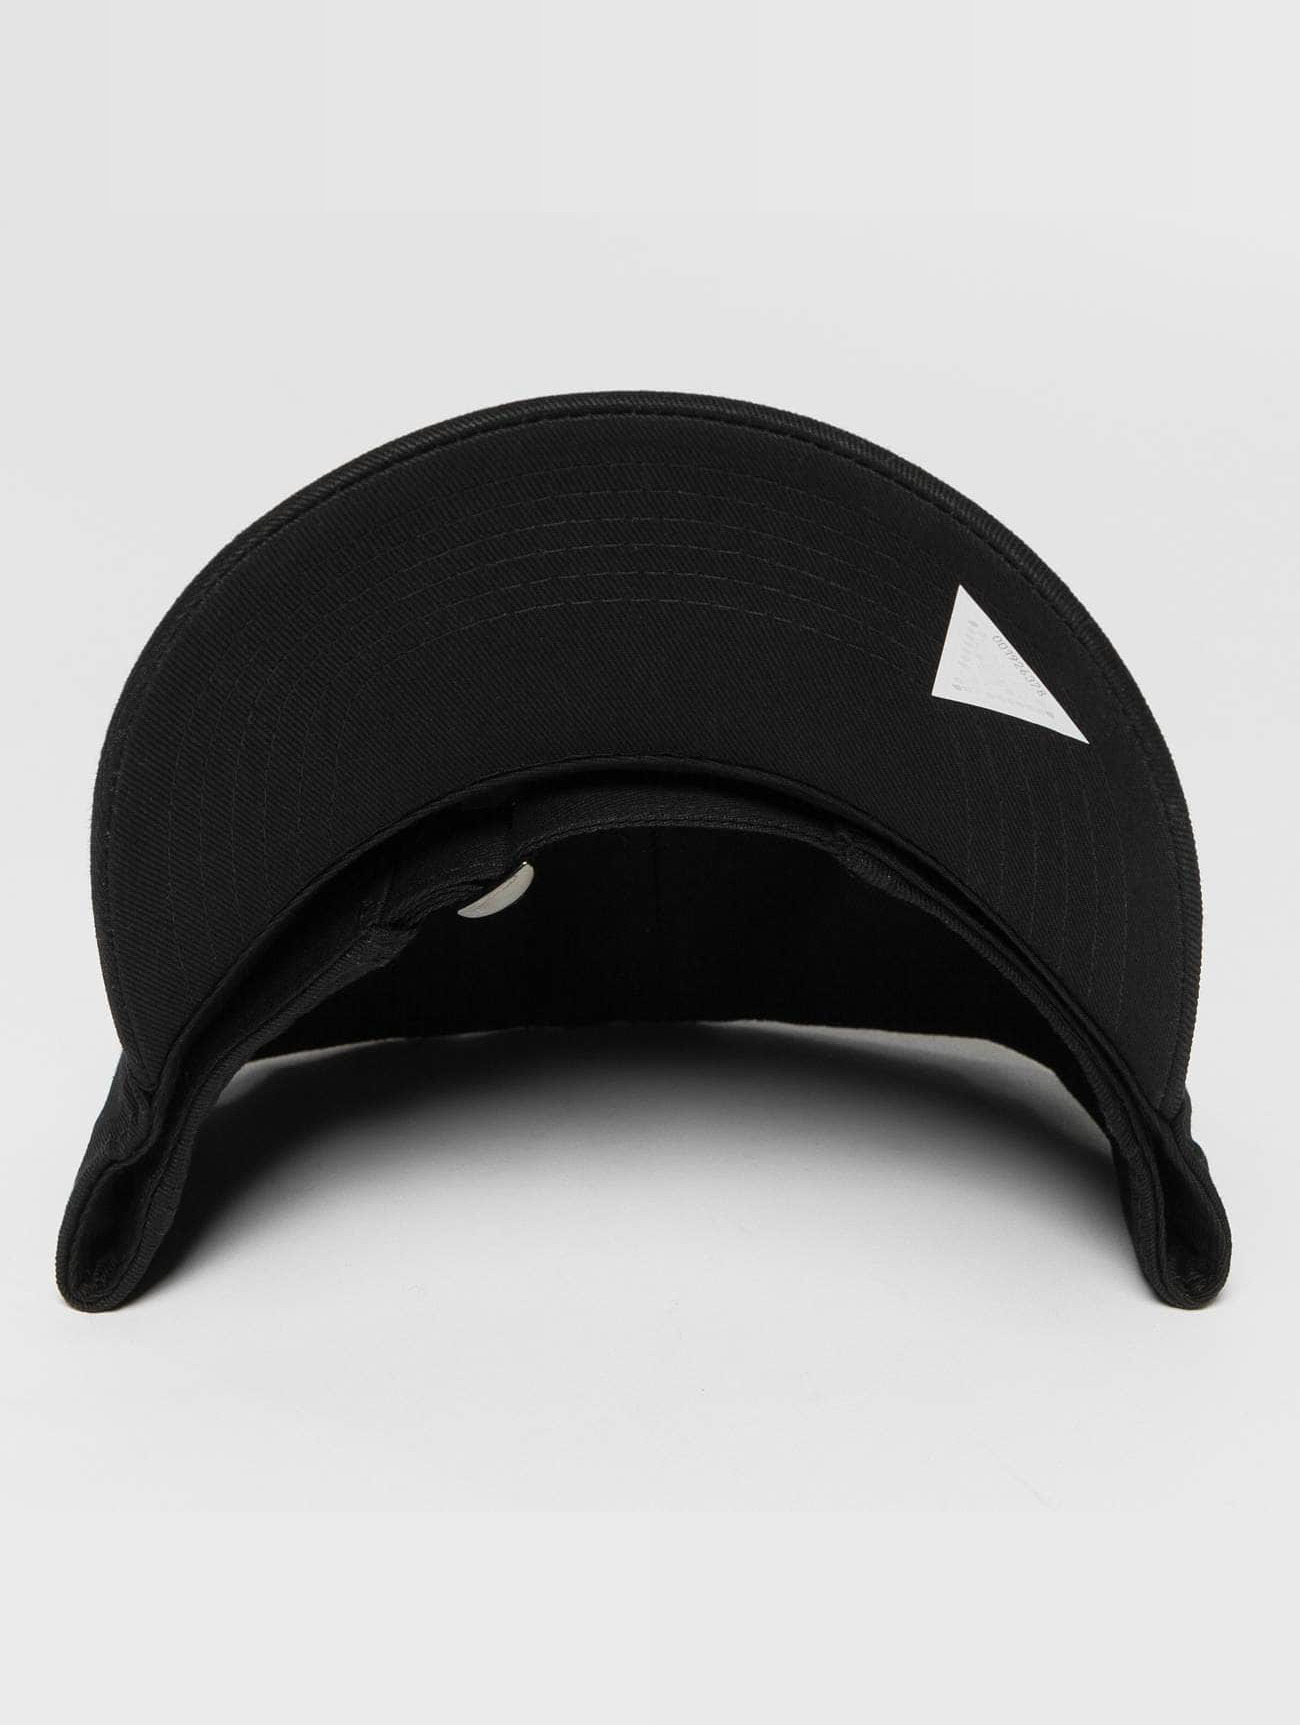 Cayler & Sons  CSBL Freedom Corps  noir  Casquette Snapback & Strapback  427318 Homme Casquettes